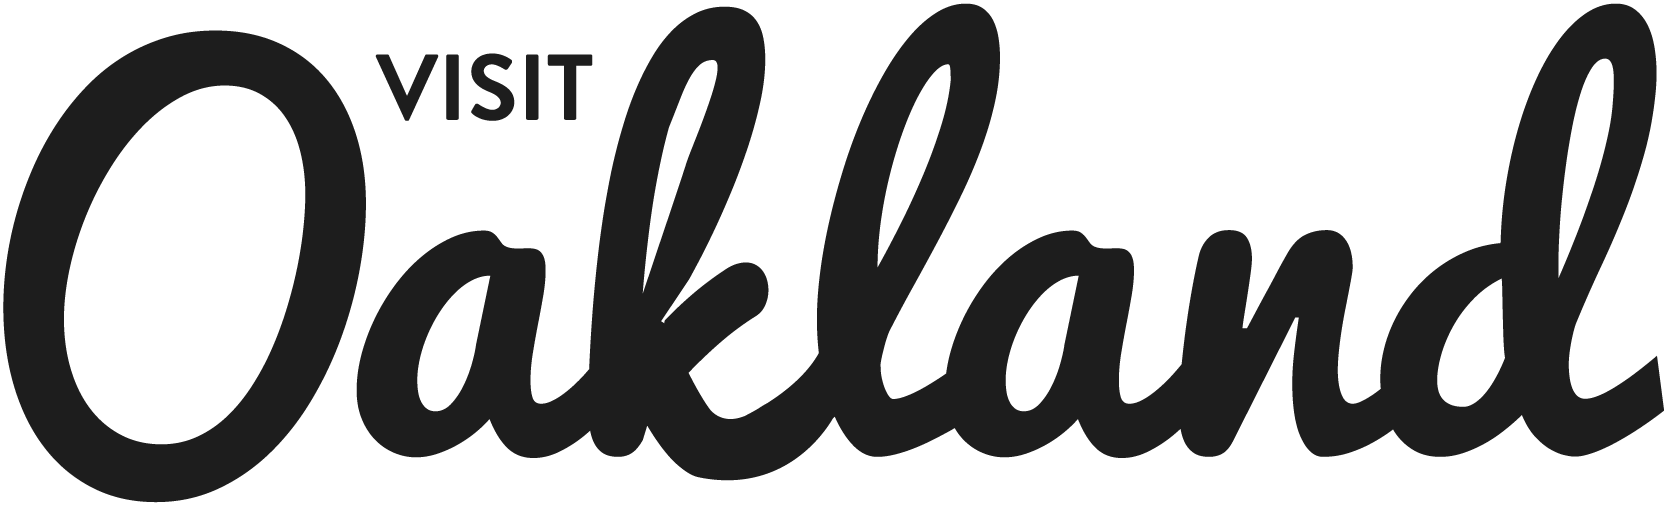 vistoakland-logo-words-only-black.png